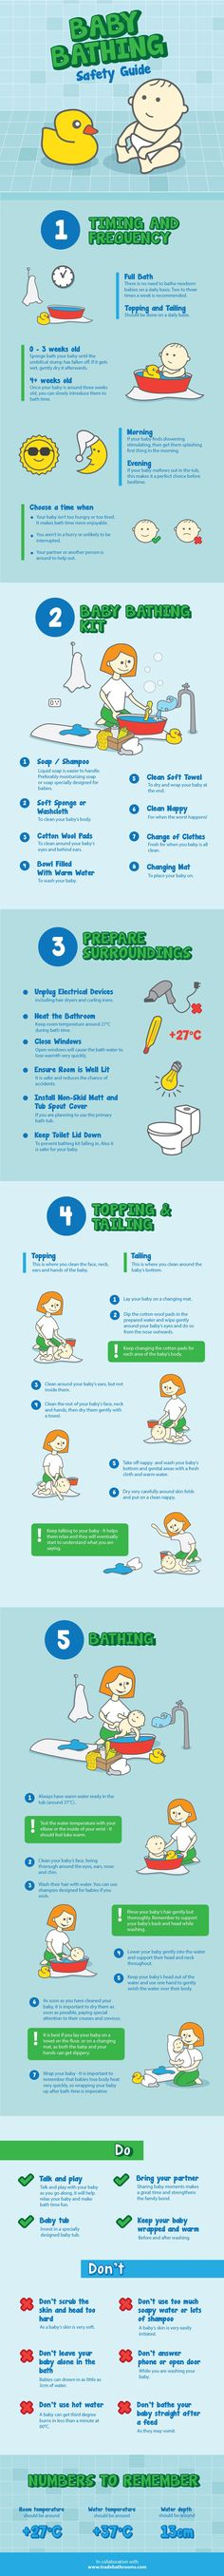 Baby Bathing Safety Guide! This infographic is a fantastic resource for all parents on baby bath time. There are some important things to bear in mind to make sure your baby is safe at all times.